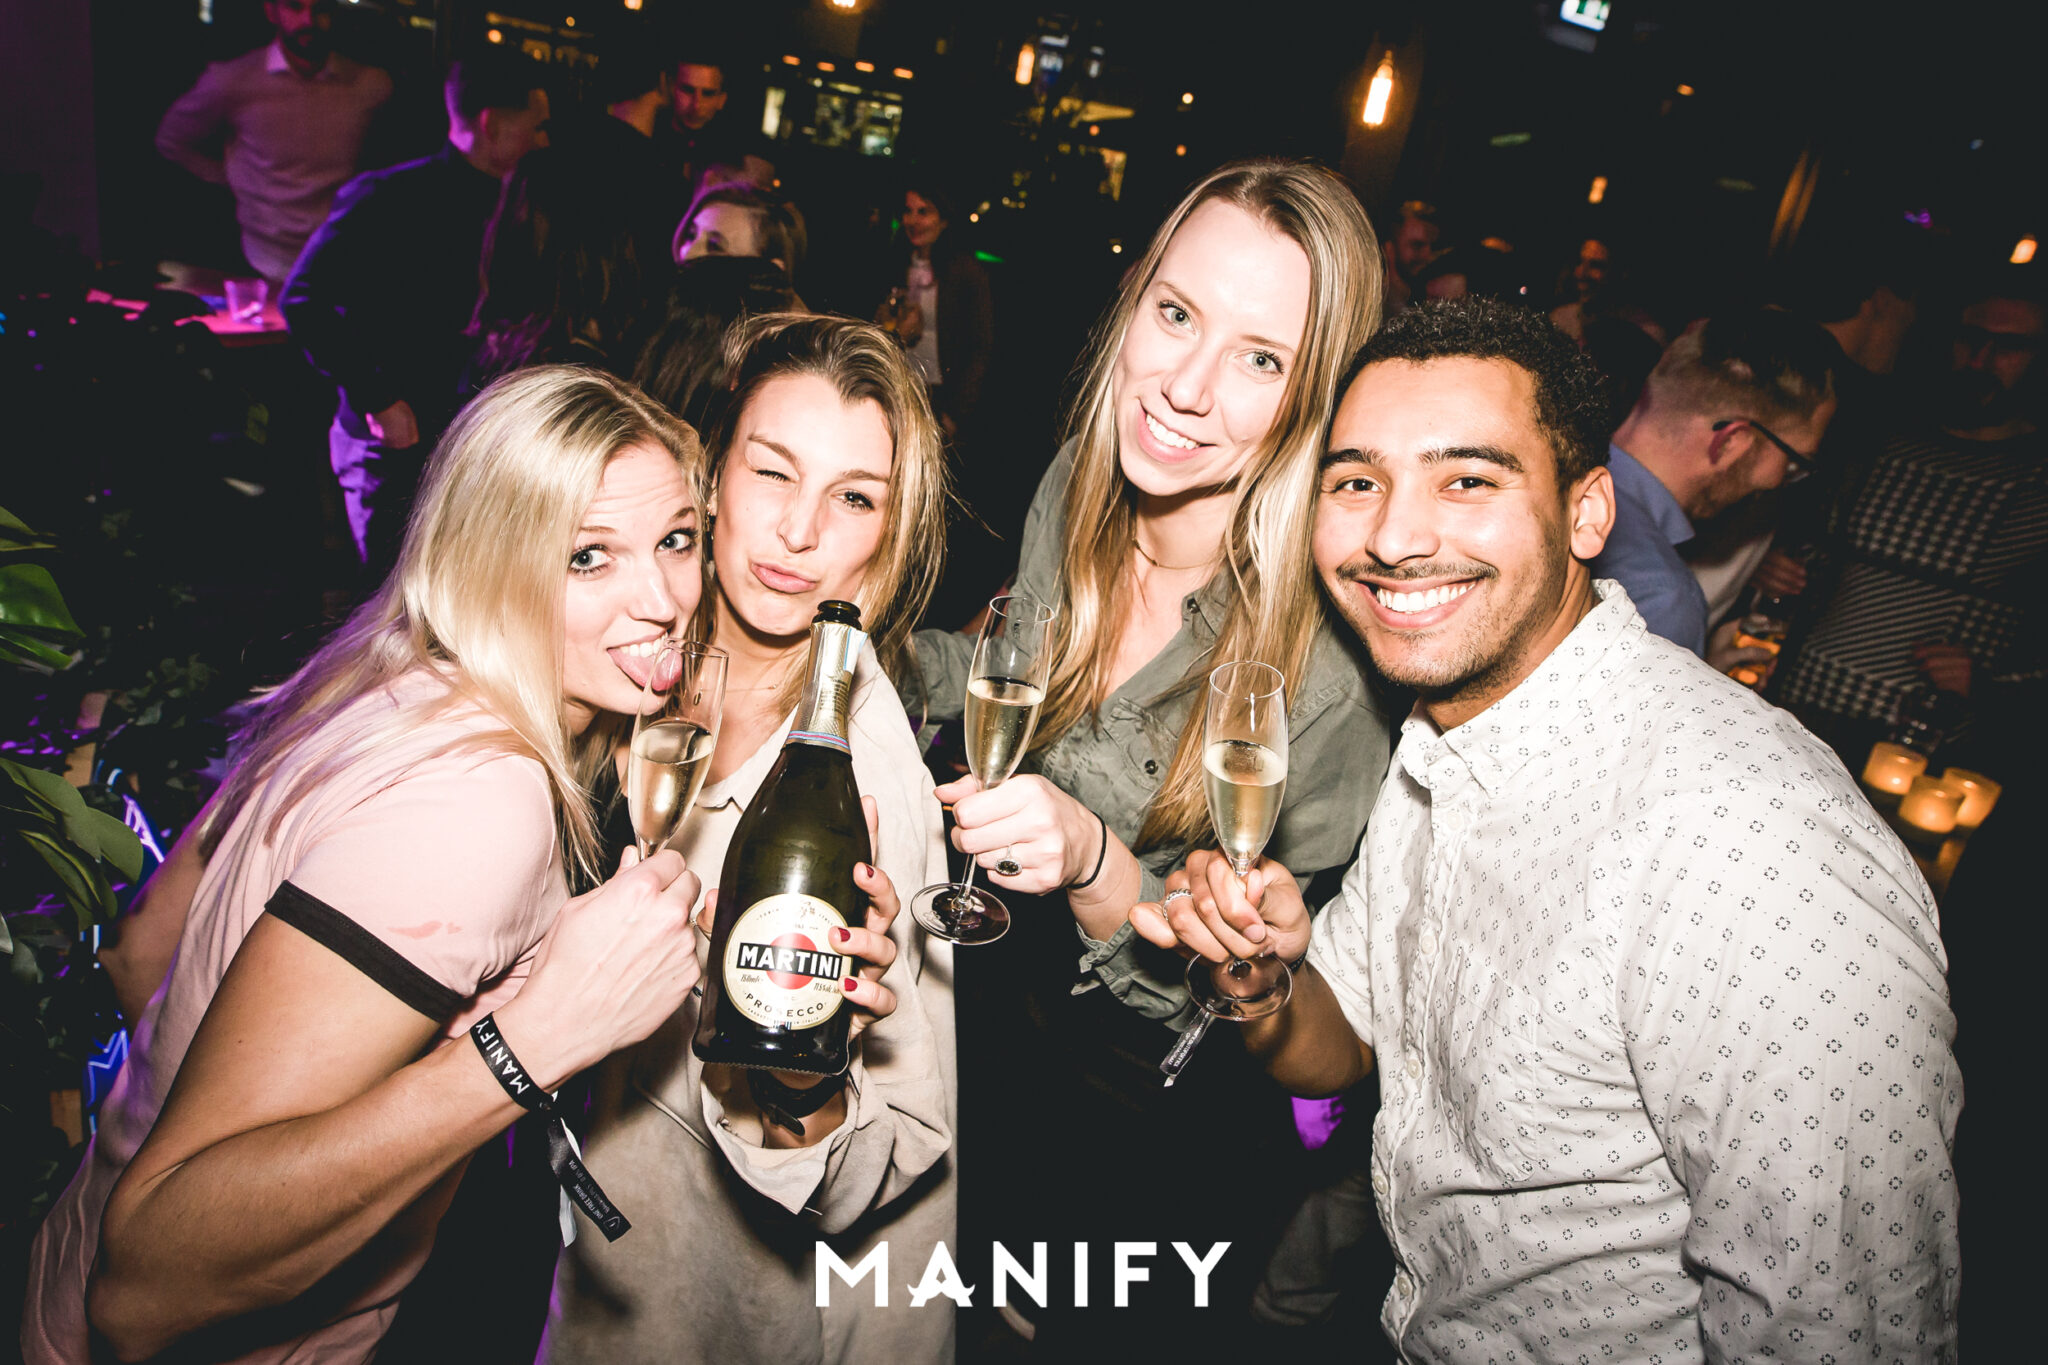 Manify_Out_of_office_Loods61_07-01-20_WM-47